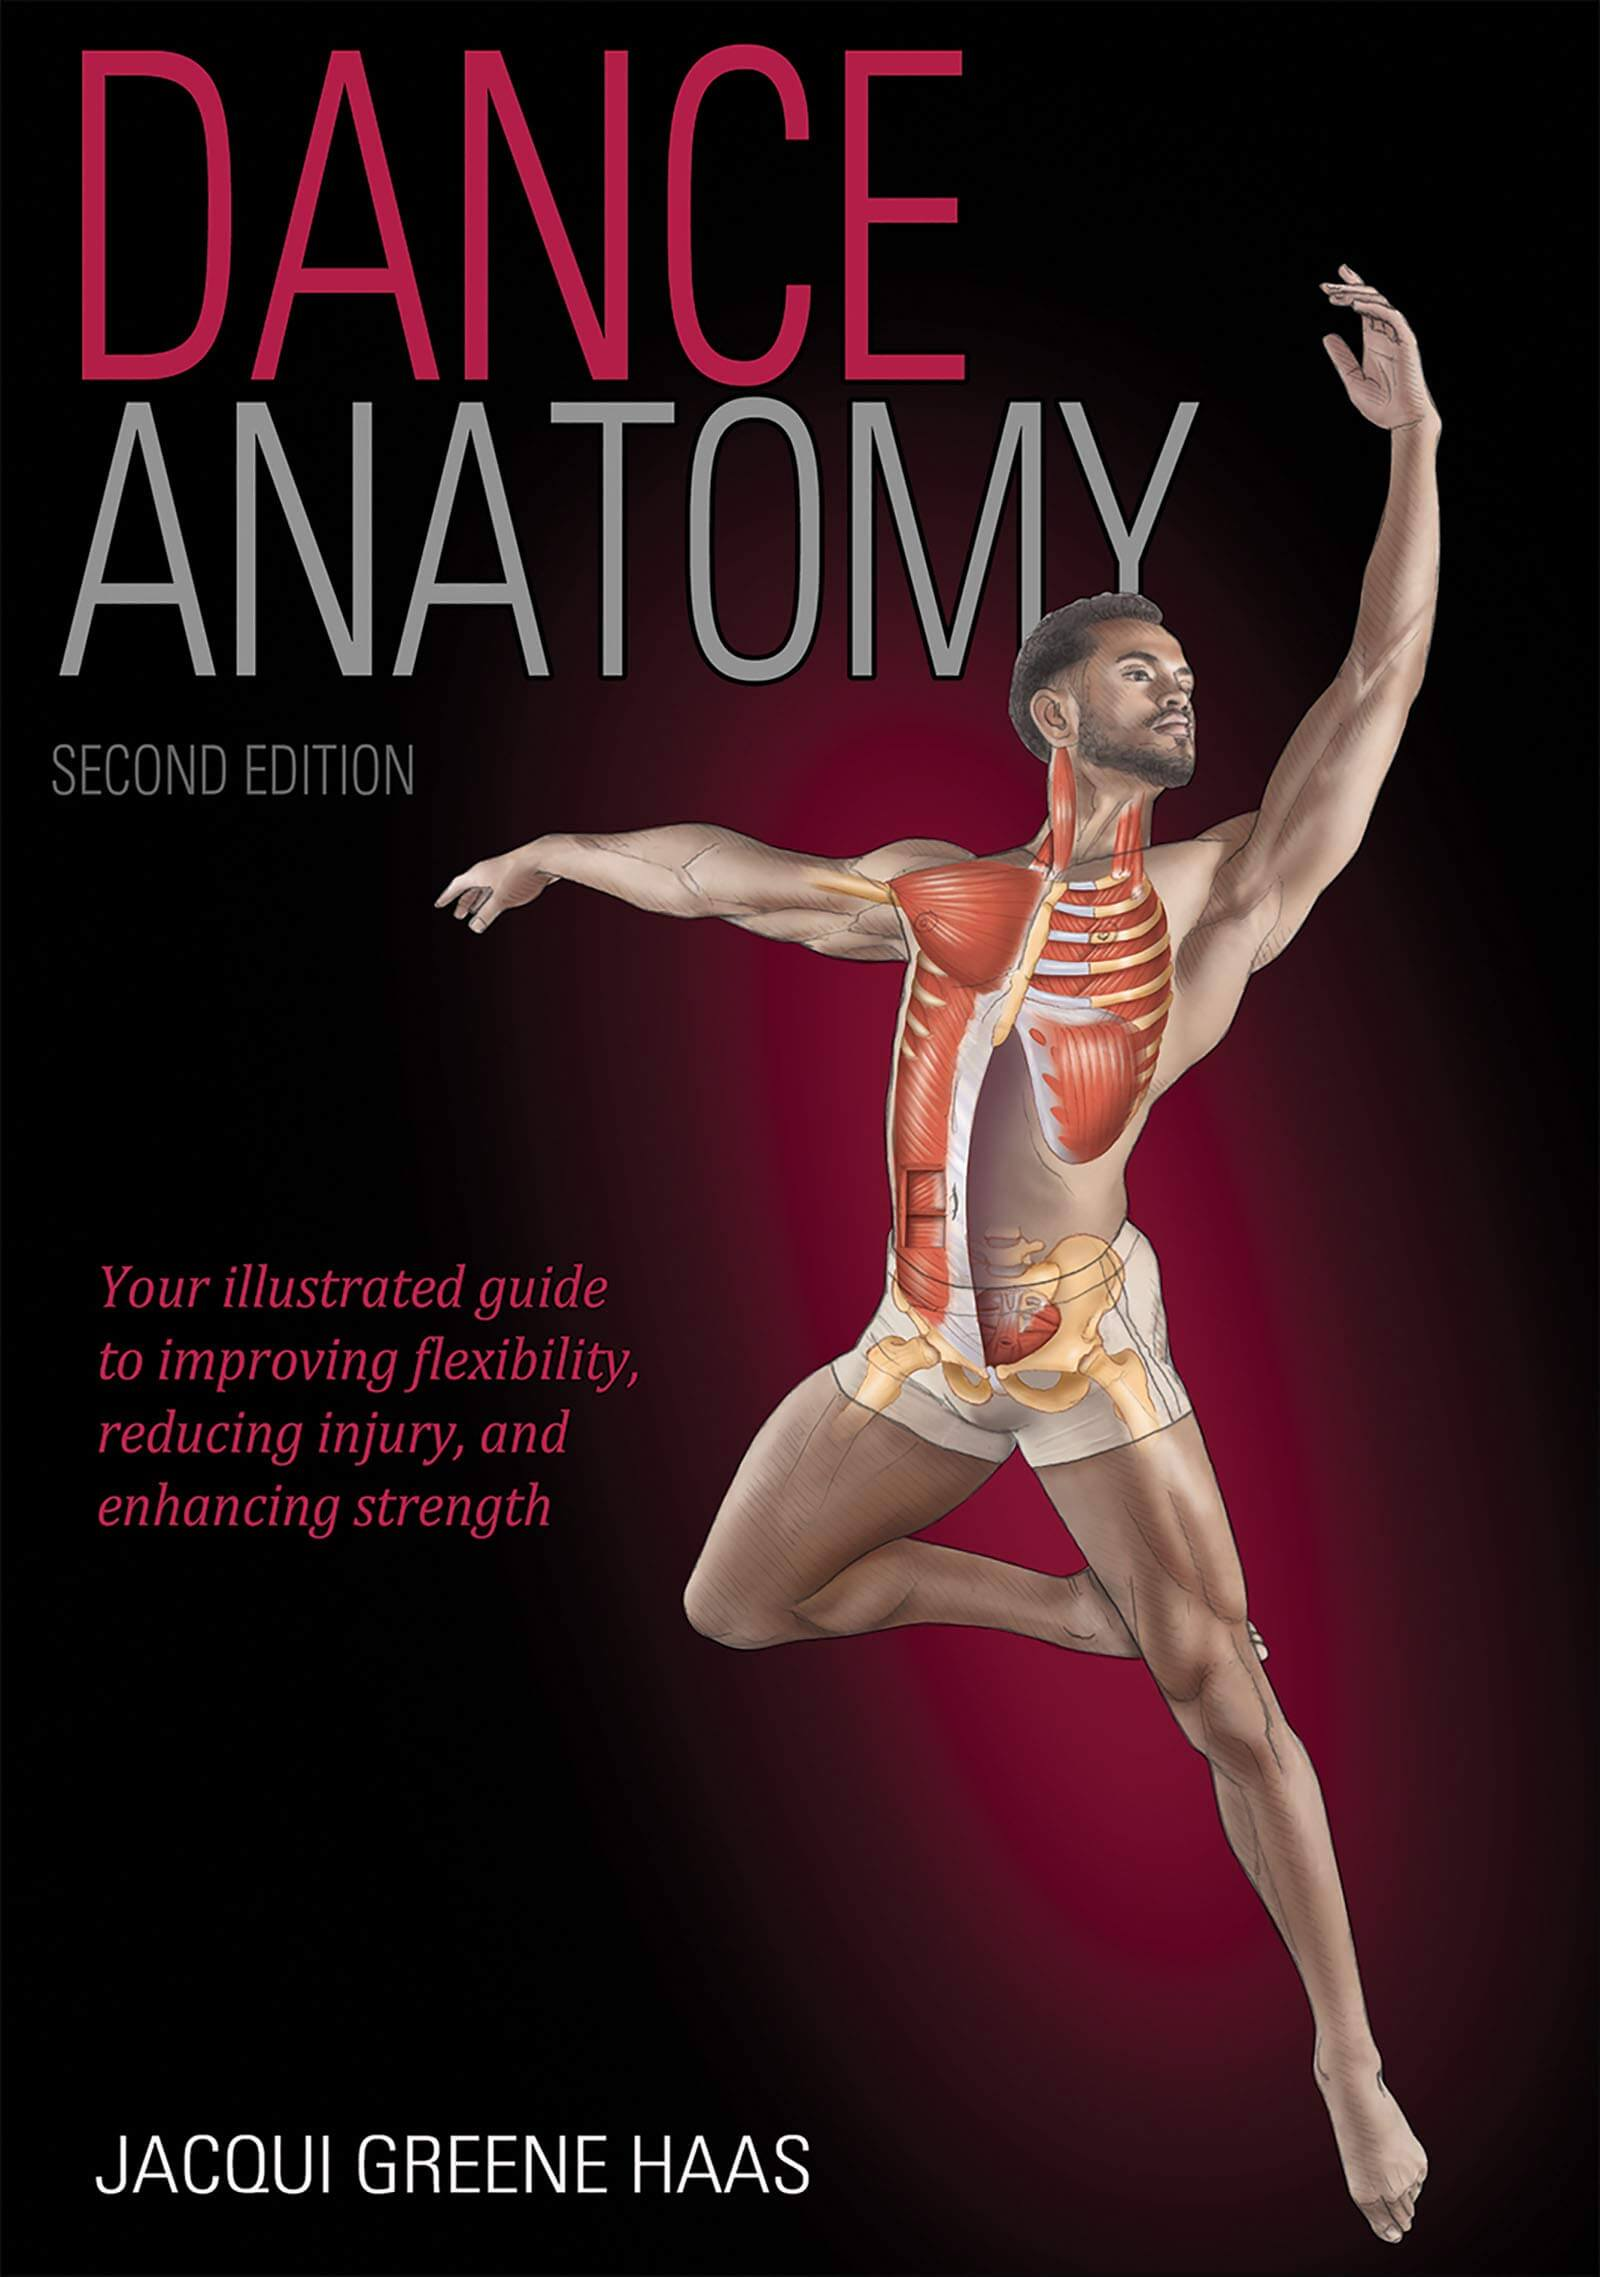 Dance Anatomy by Jacqui Greene Haas Cover